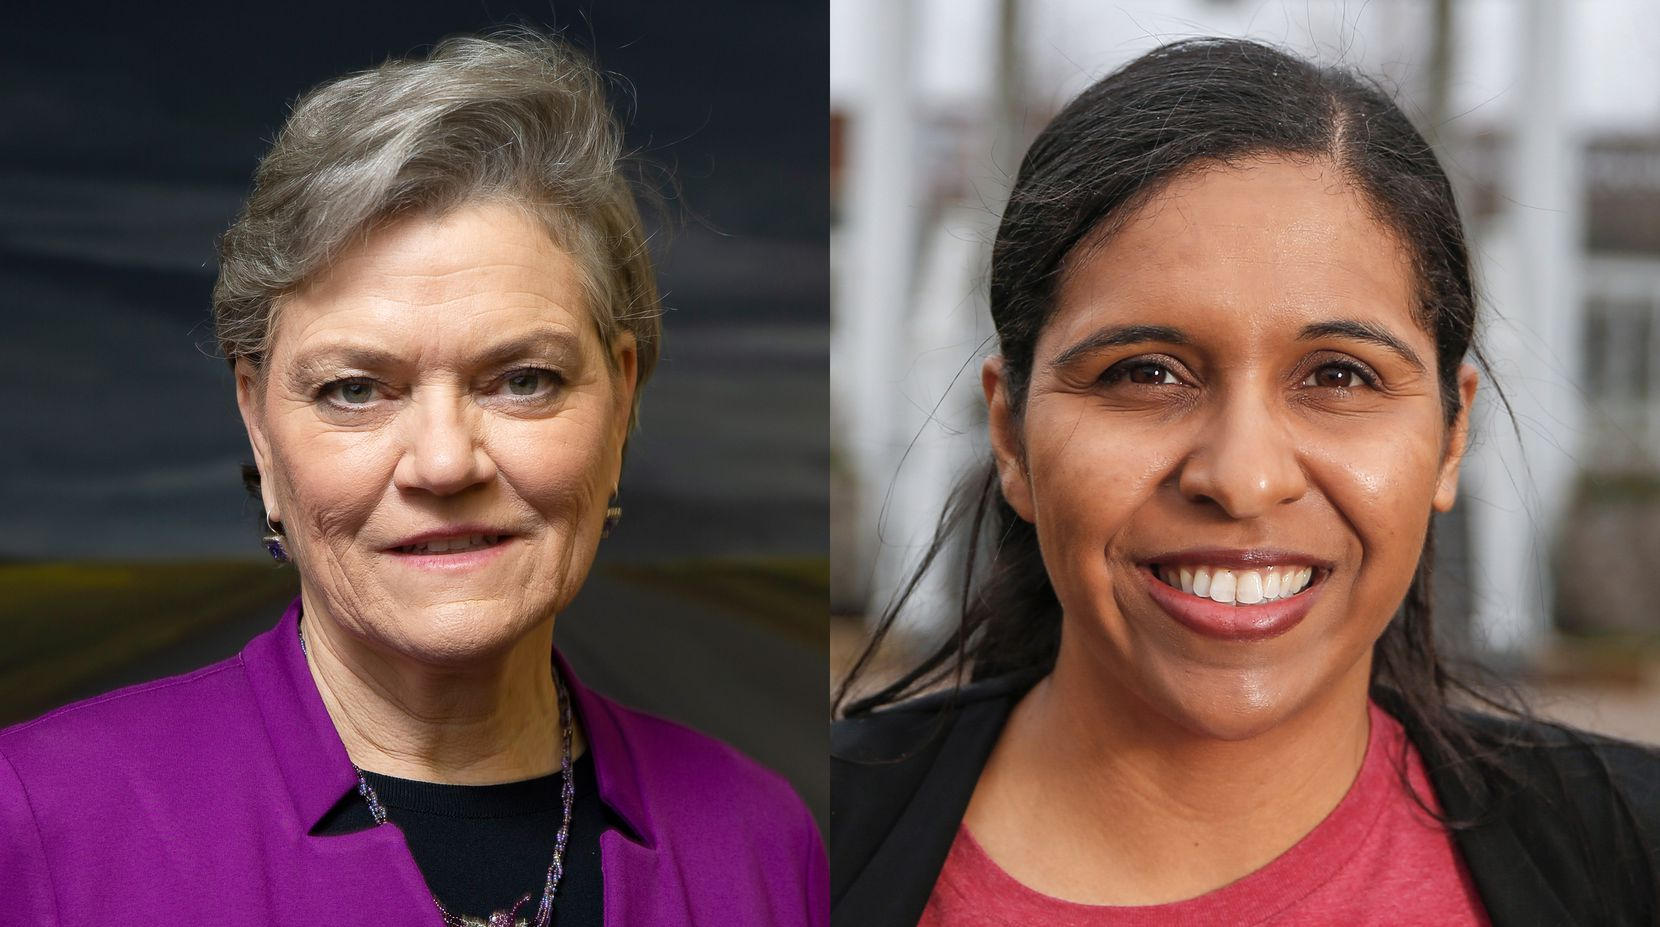 Kim Olson (left) and Candace Valenzuela are Democratic candidates for Texas' 24th Congressional District, facing each other in the 2020 primary runoff election.